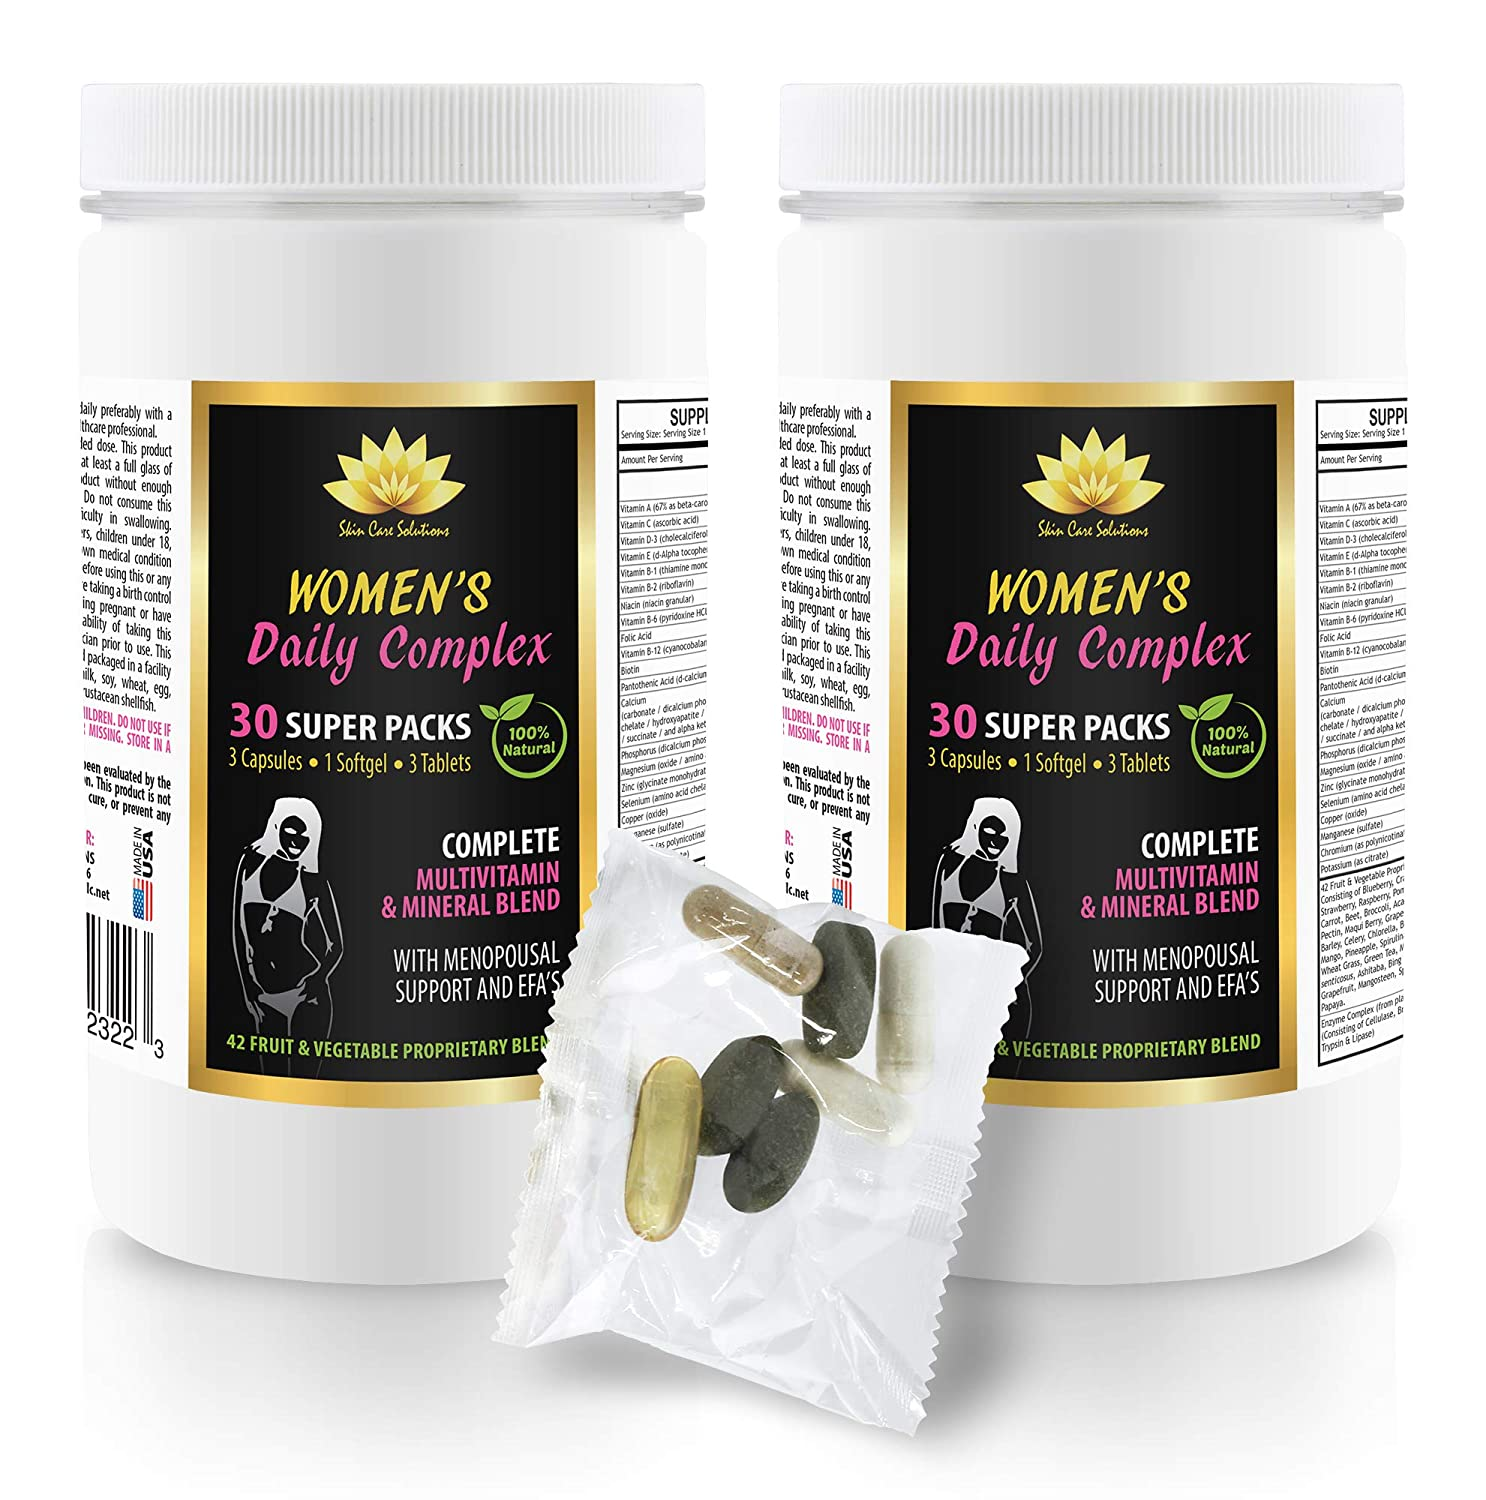 Women multivitamin - Women's Daily Complex - 100% Natural - echinacea with Vitamin c and zinc - 2 Cans 60 Packs (420 Pills)